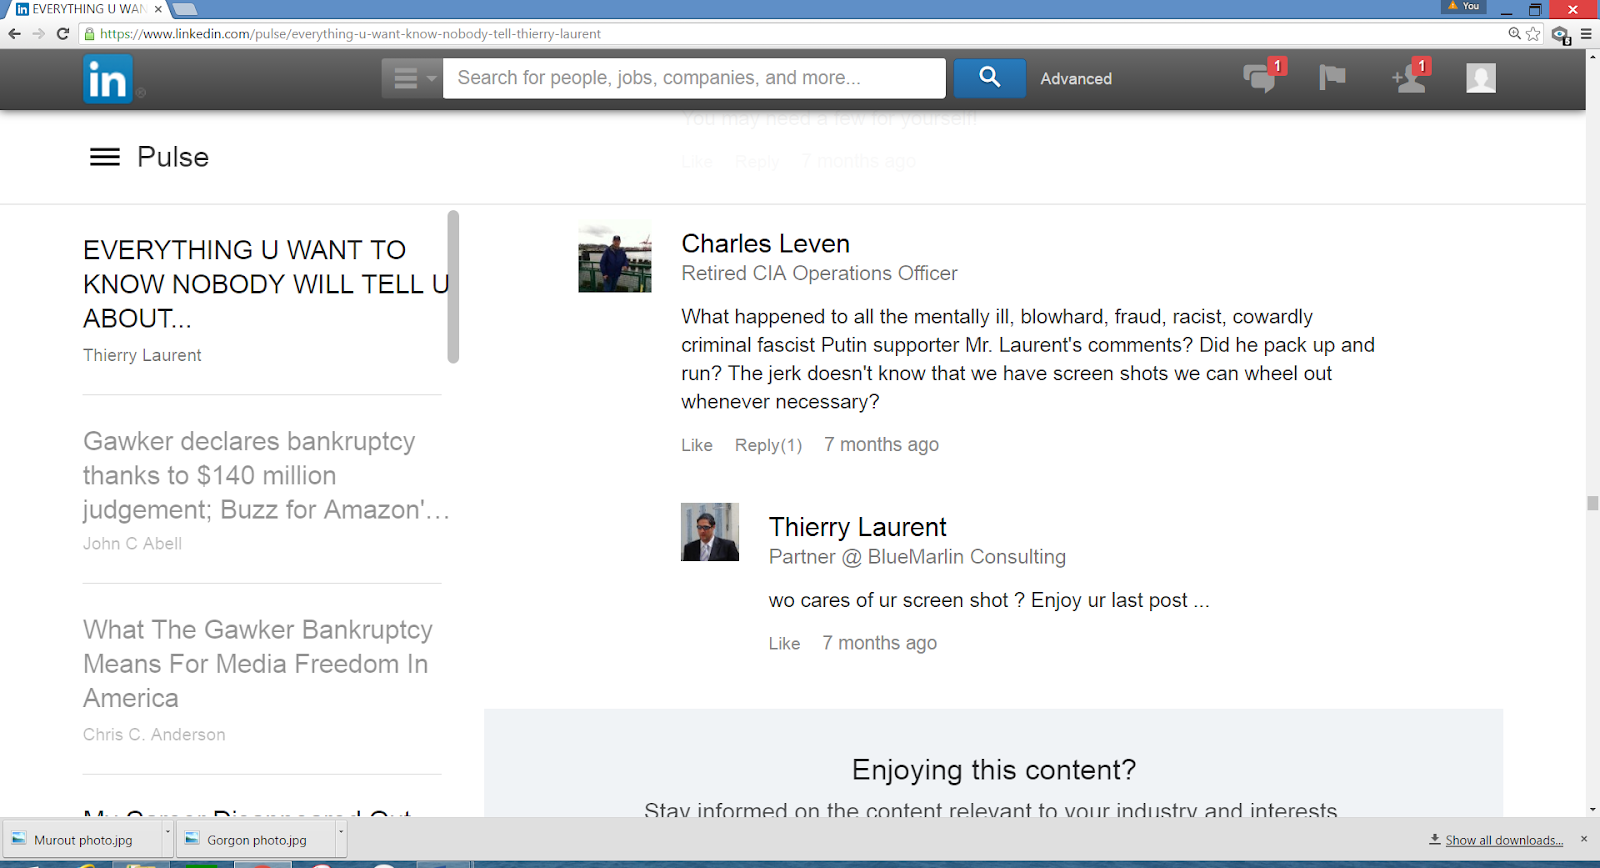 E:\LINKEDIN\Leven's comment re Laurent final.PNG